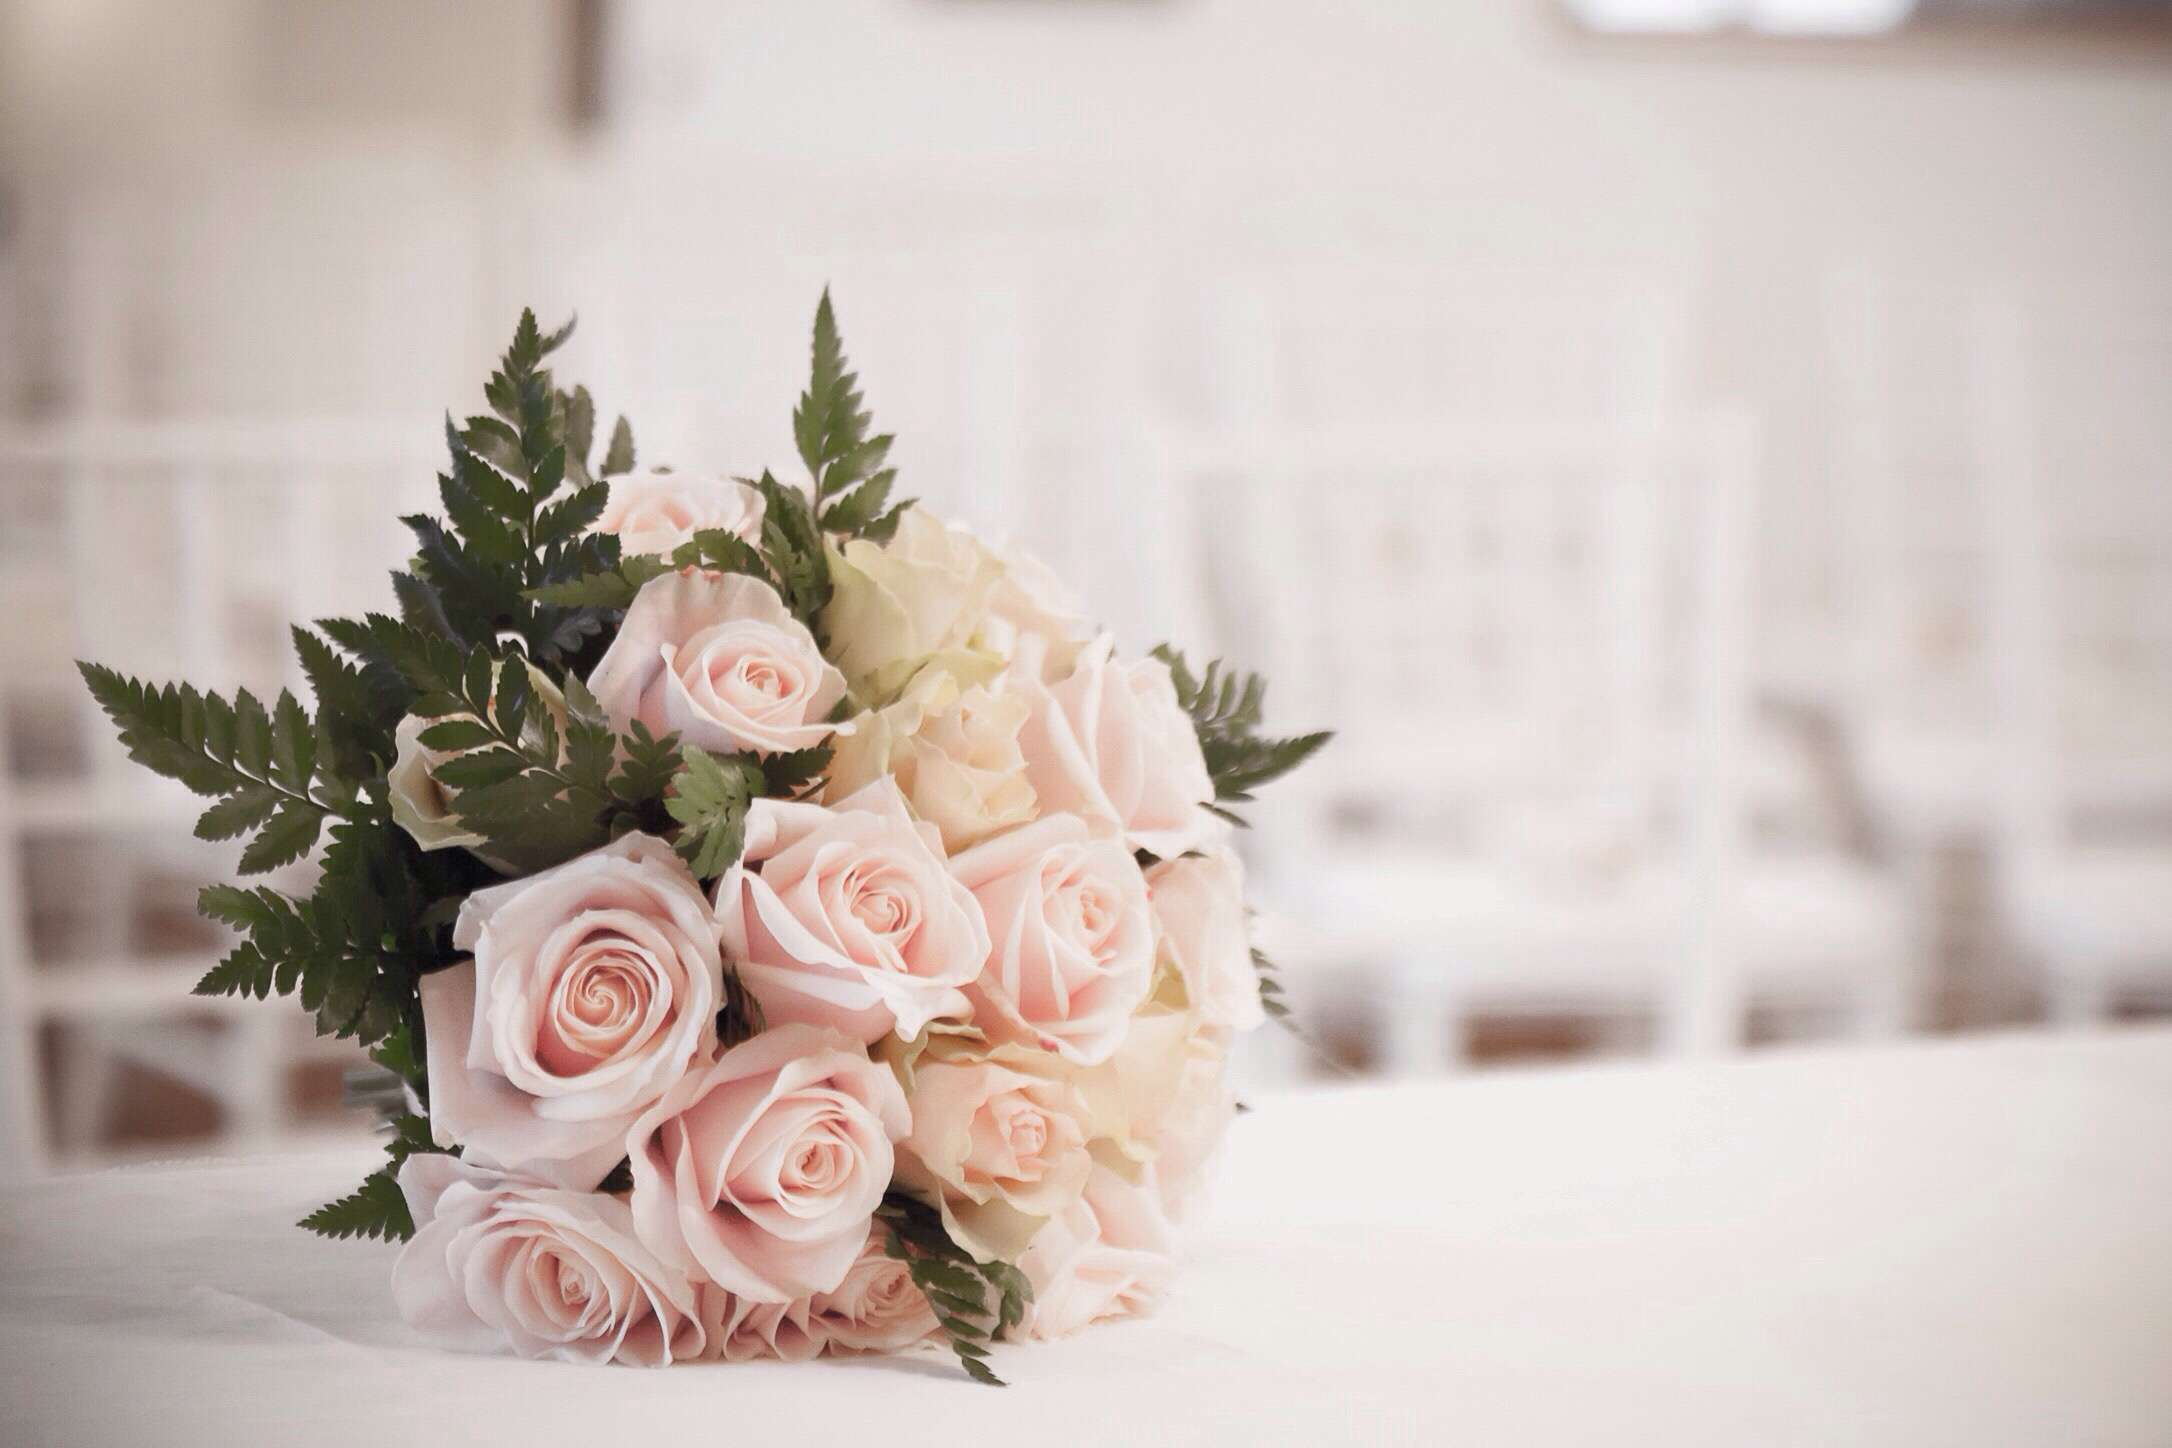 Rose wedding bouquet on a table